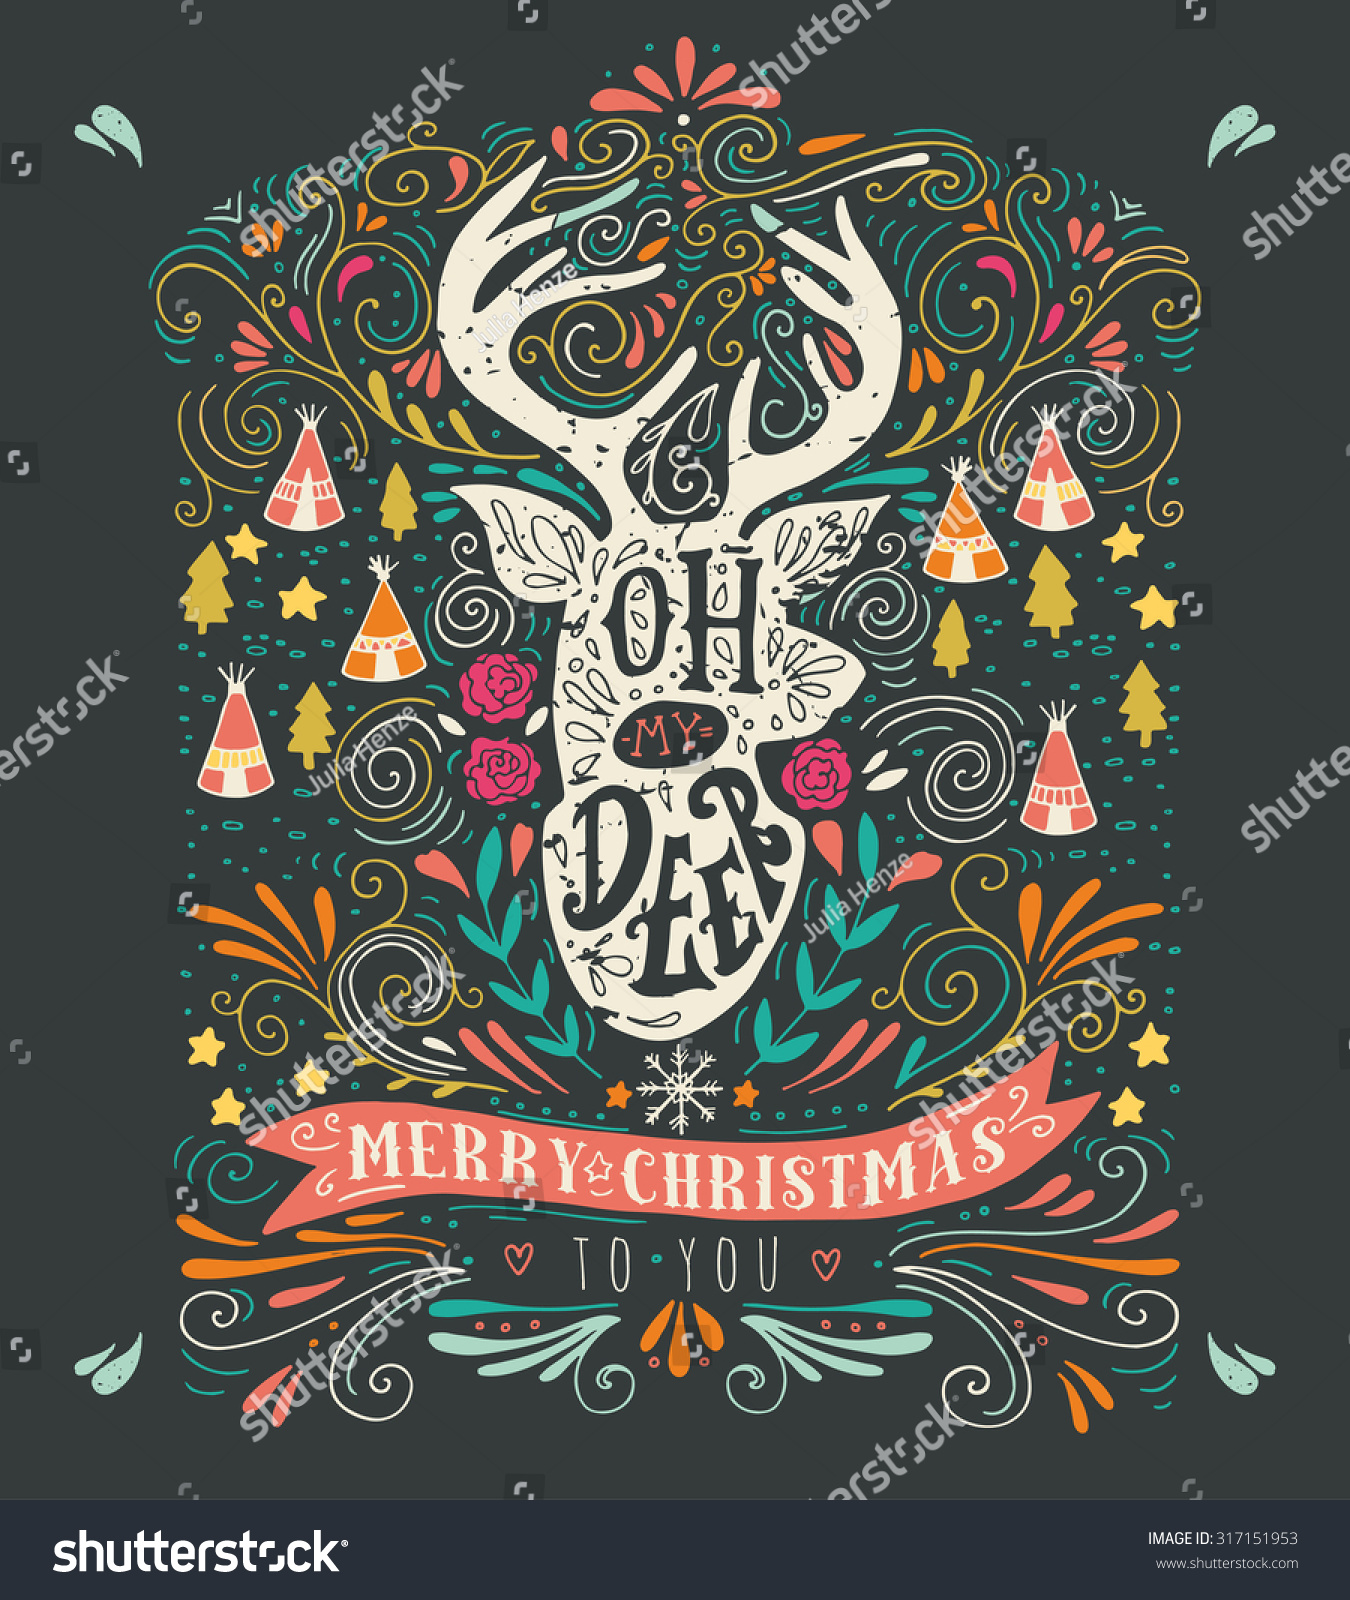 merry christmas vintage hand drawn illustration with a reindeer silhouette